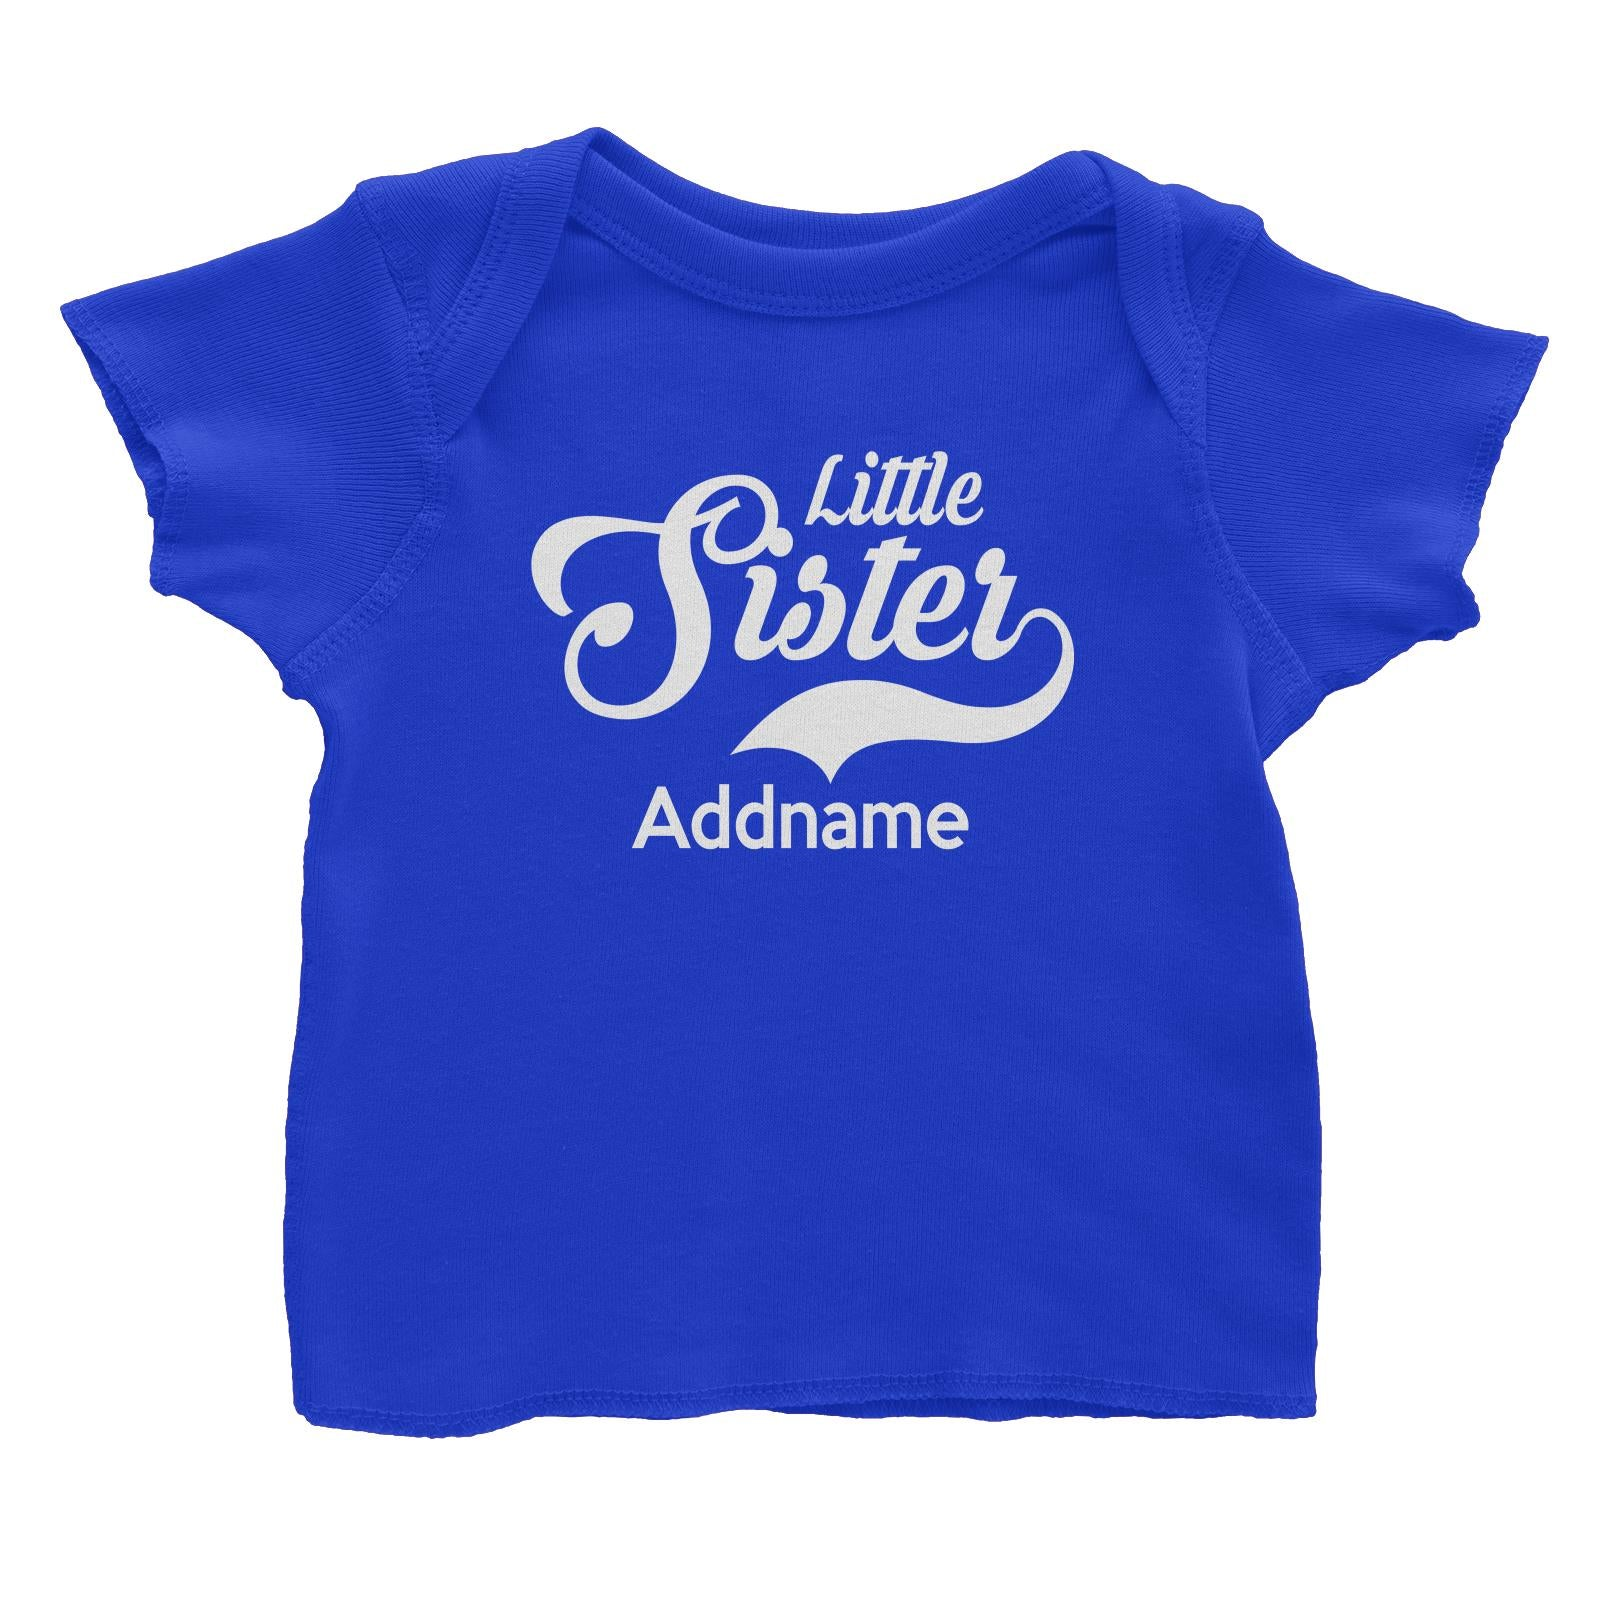 Retro Little Sister Addname Baby T-Shirt  Matching Family Personalizable Designs